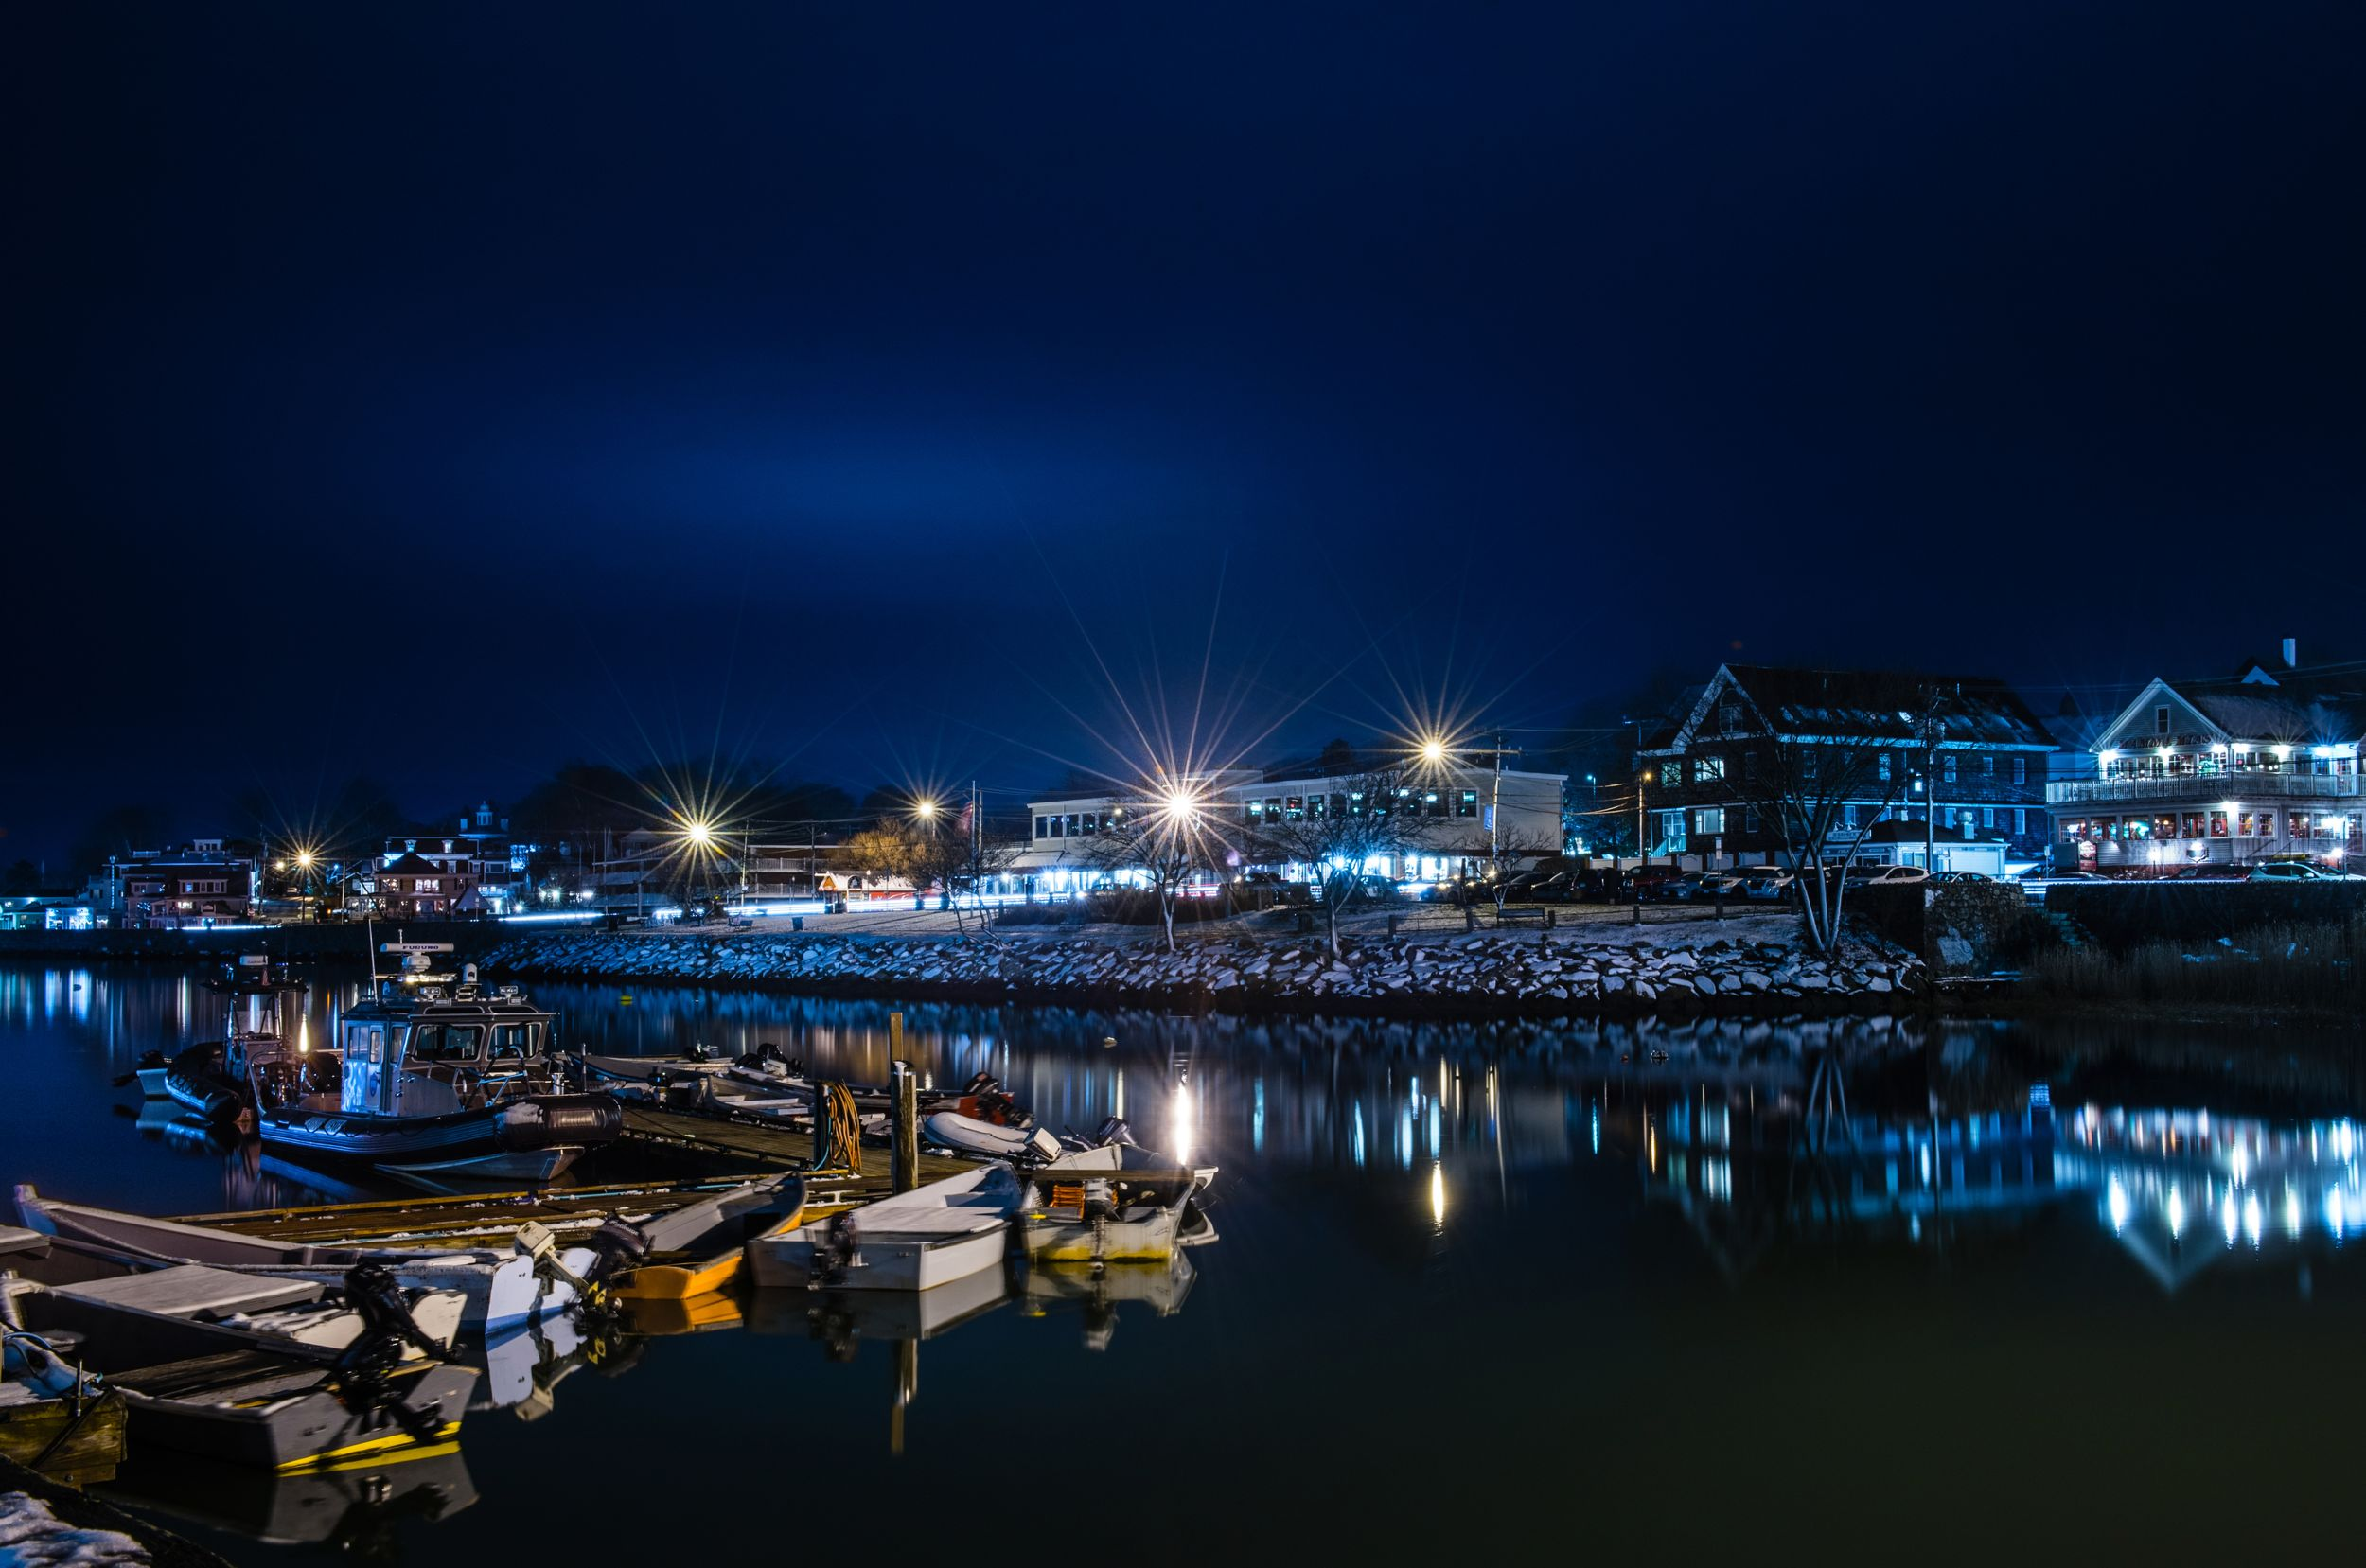 Night view of Plymouth Waterfront, looking at  Water Street. Boats and businesses in the image.